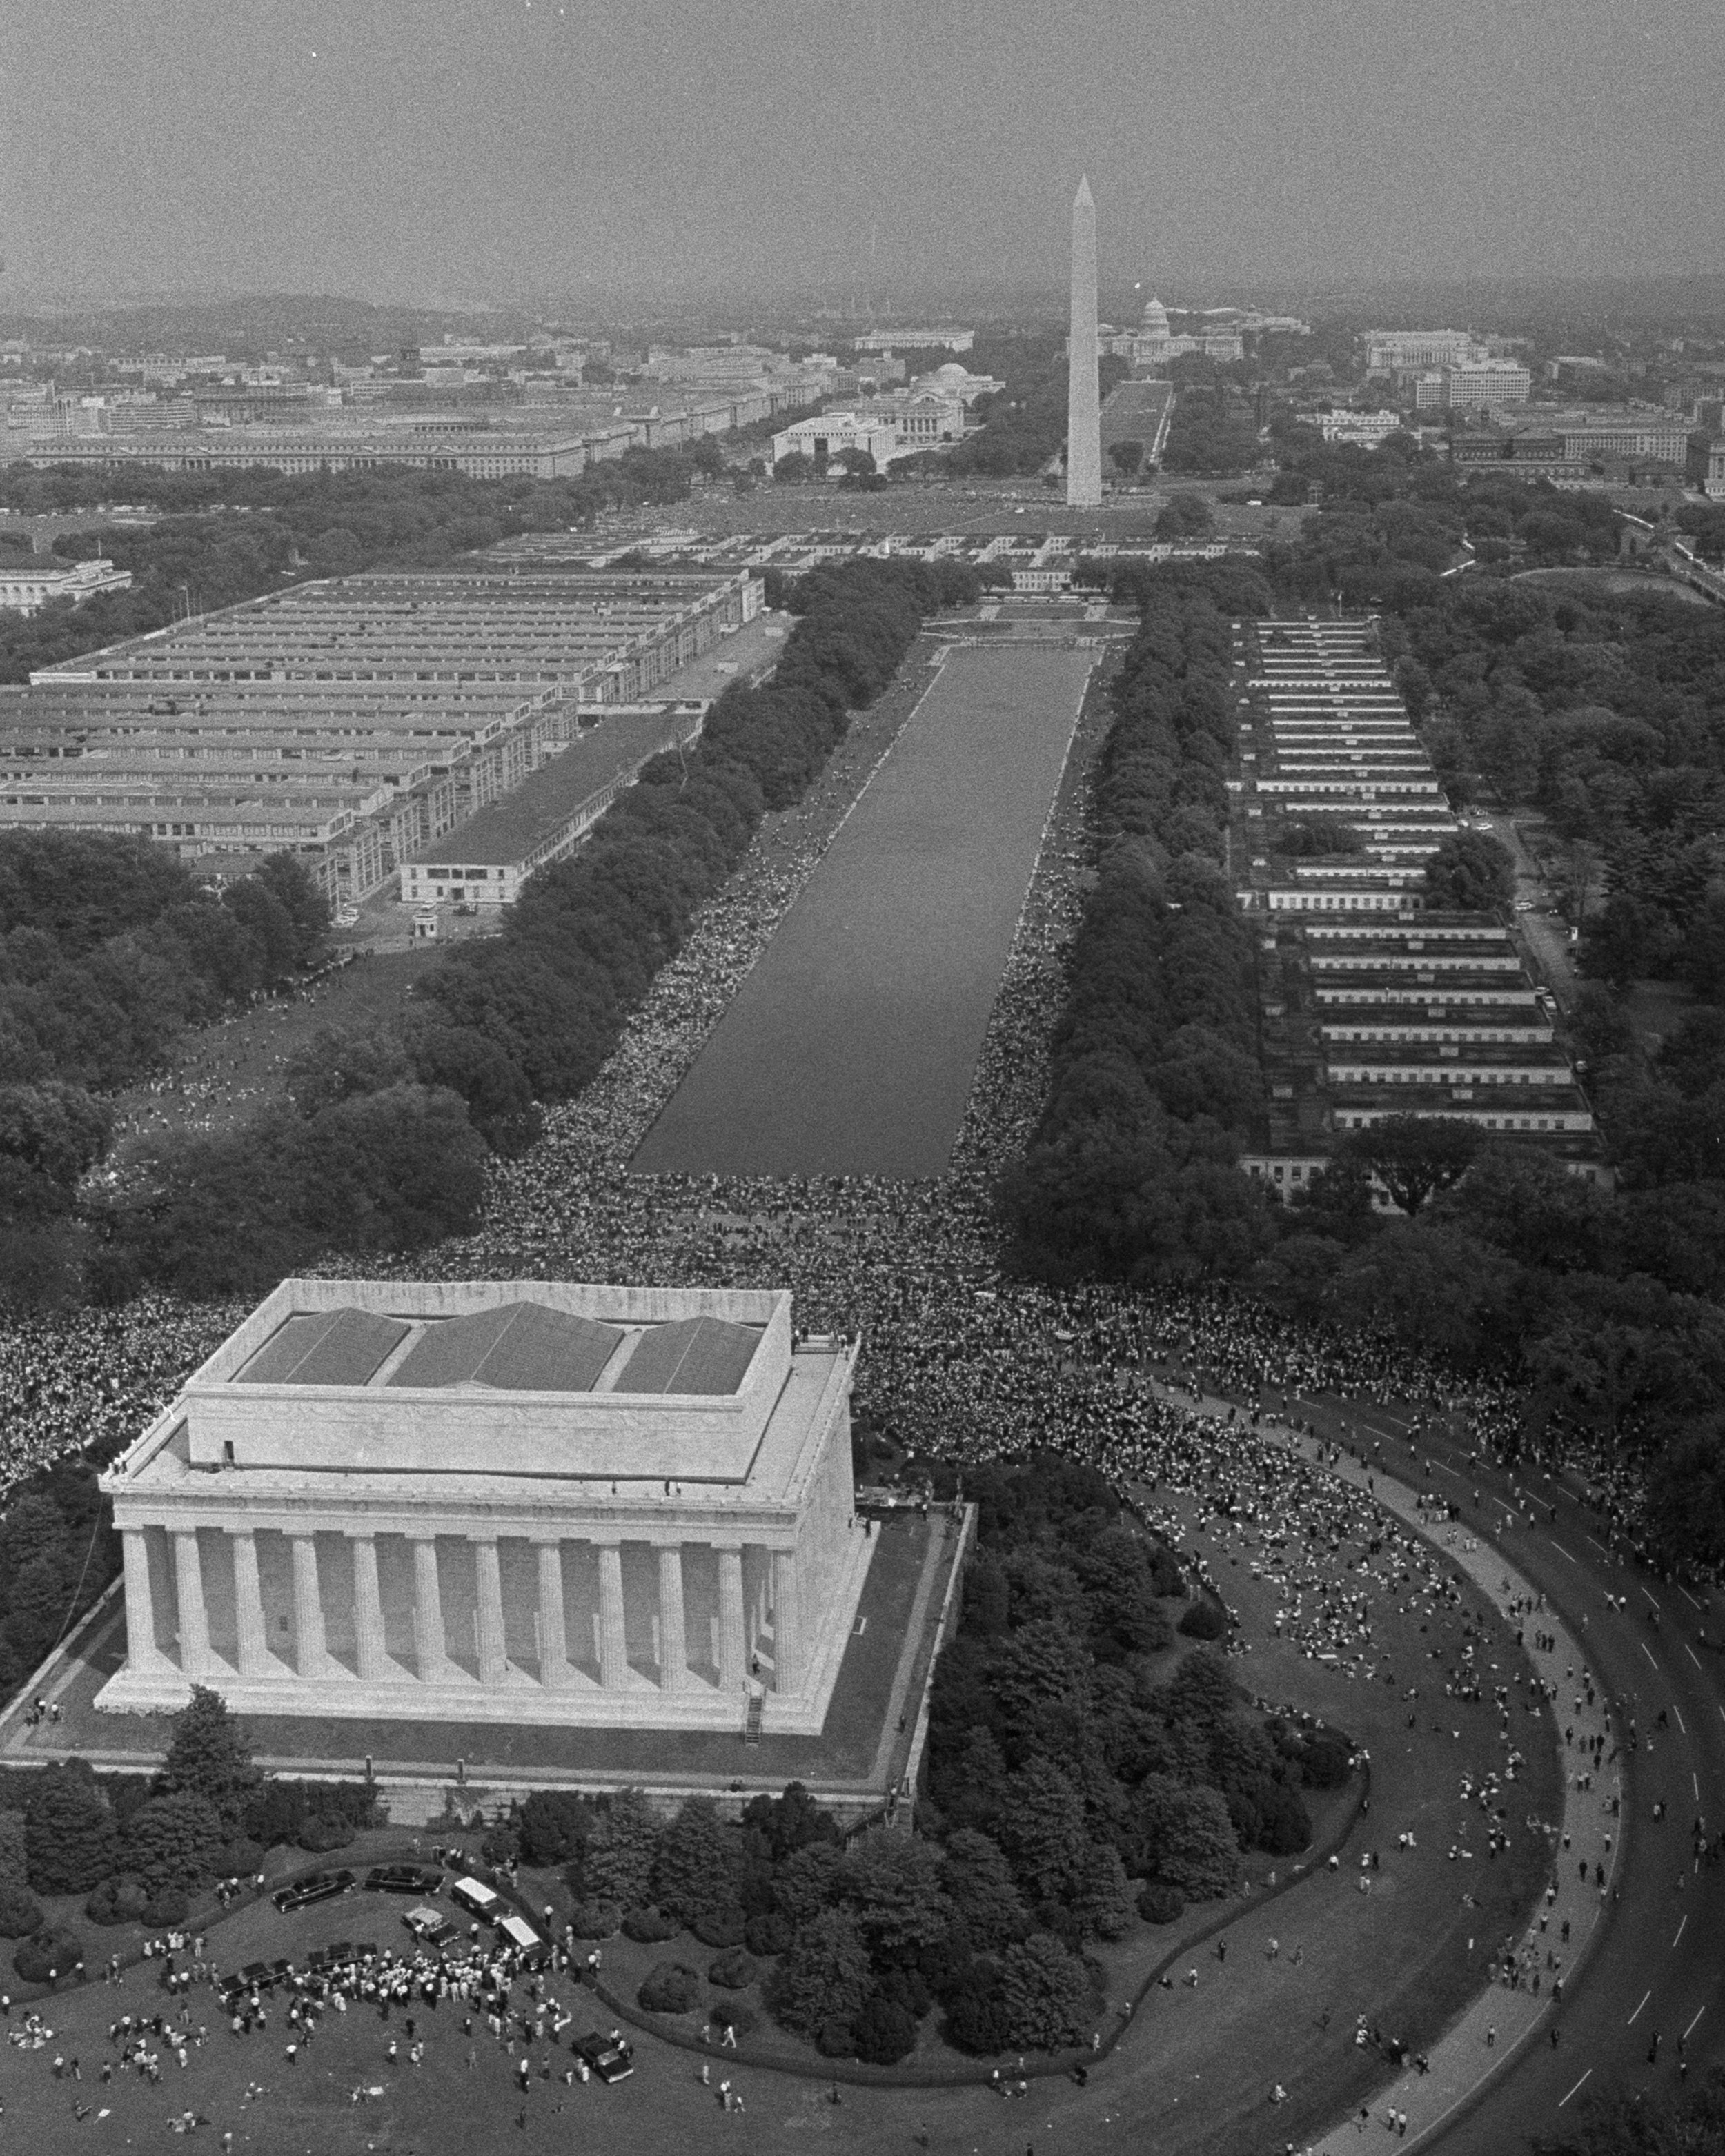 """On August 28, 1963, more than 250,000 civil rights supporters gathered in Washington, D.C. to hear Martin Luther King Jr.'s famous """"I Have a Dream"""" speech. As shown in this Overview, listeners stretched from the steps of the Lincoln Memorial all the way to the Washington Monument, a distance of nearly one mile (1.3 km). Today — the third Monday of January — marks Martin Luther King Jr. Day in America, a day to remember his life and contributions to the Civil Rights Movement.  38°53'21.0""""N, 77°03'03.1""""W  Source imagery: The Library of Congress"""